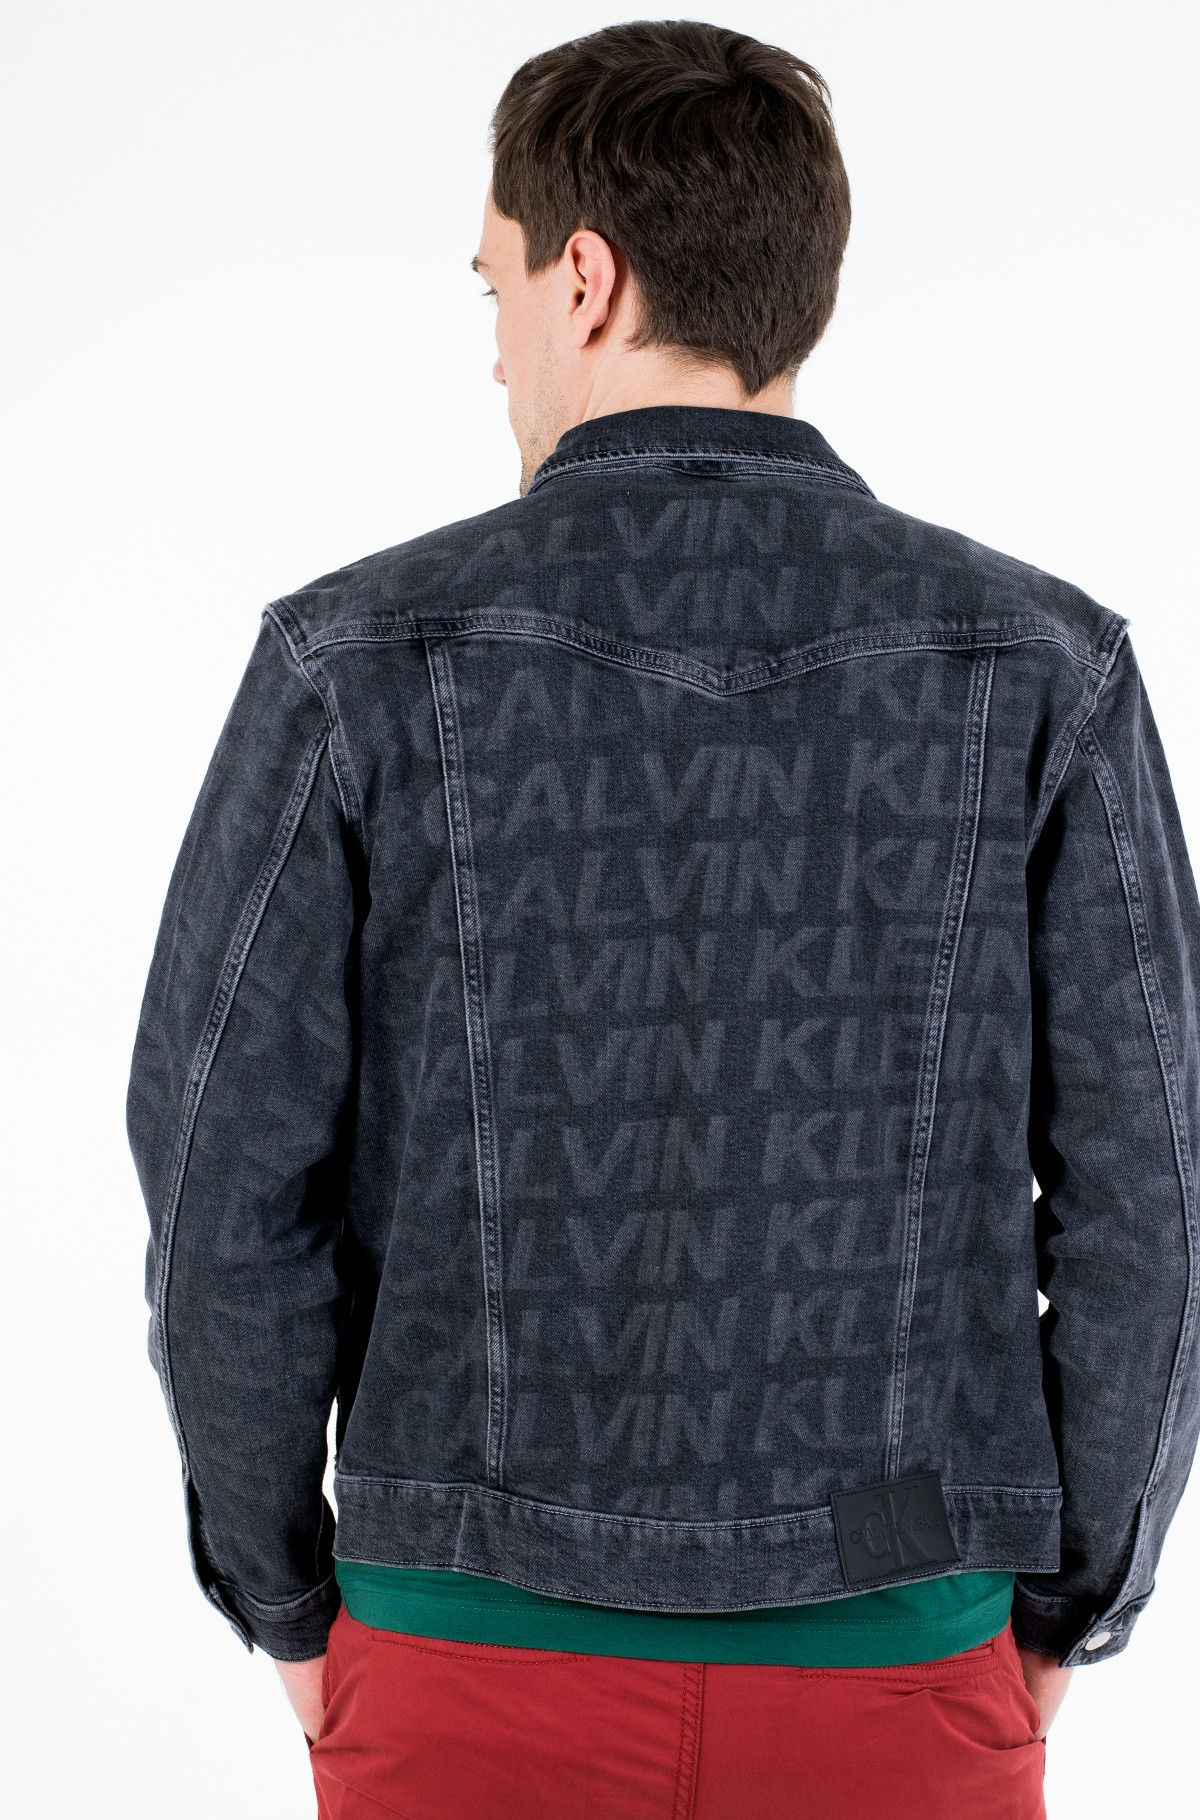 Teksatagi FOUNDATION SLIM DENIM JACKET-full-2